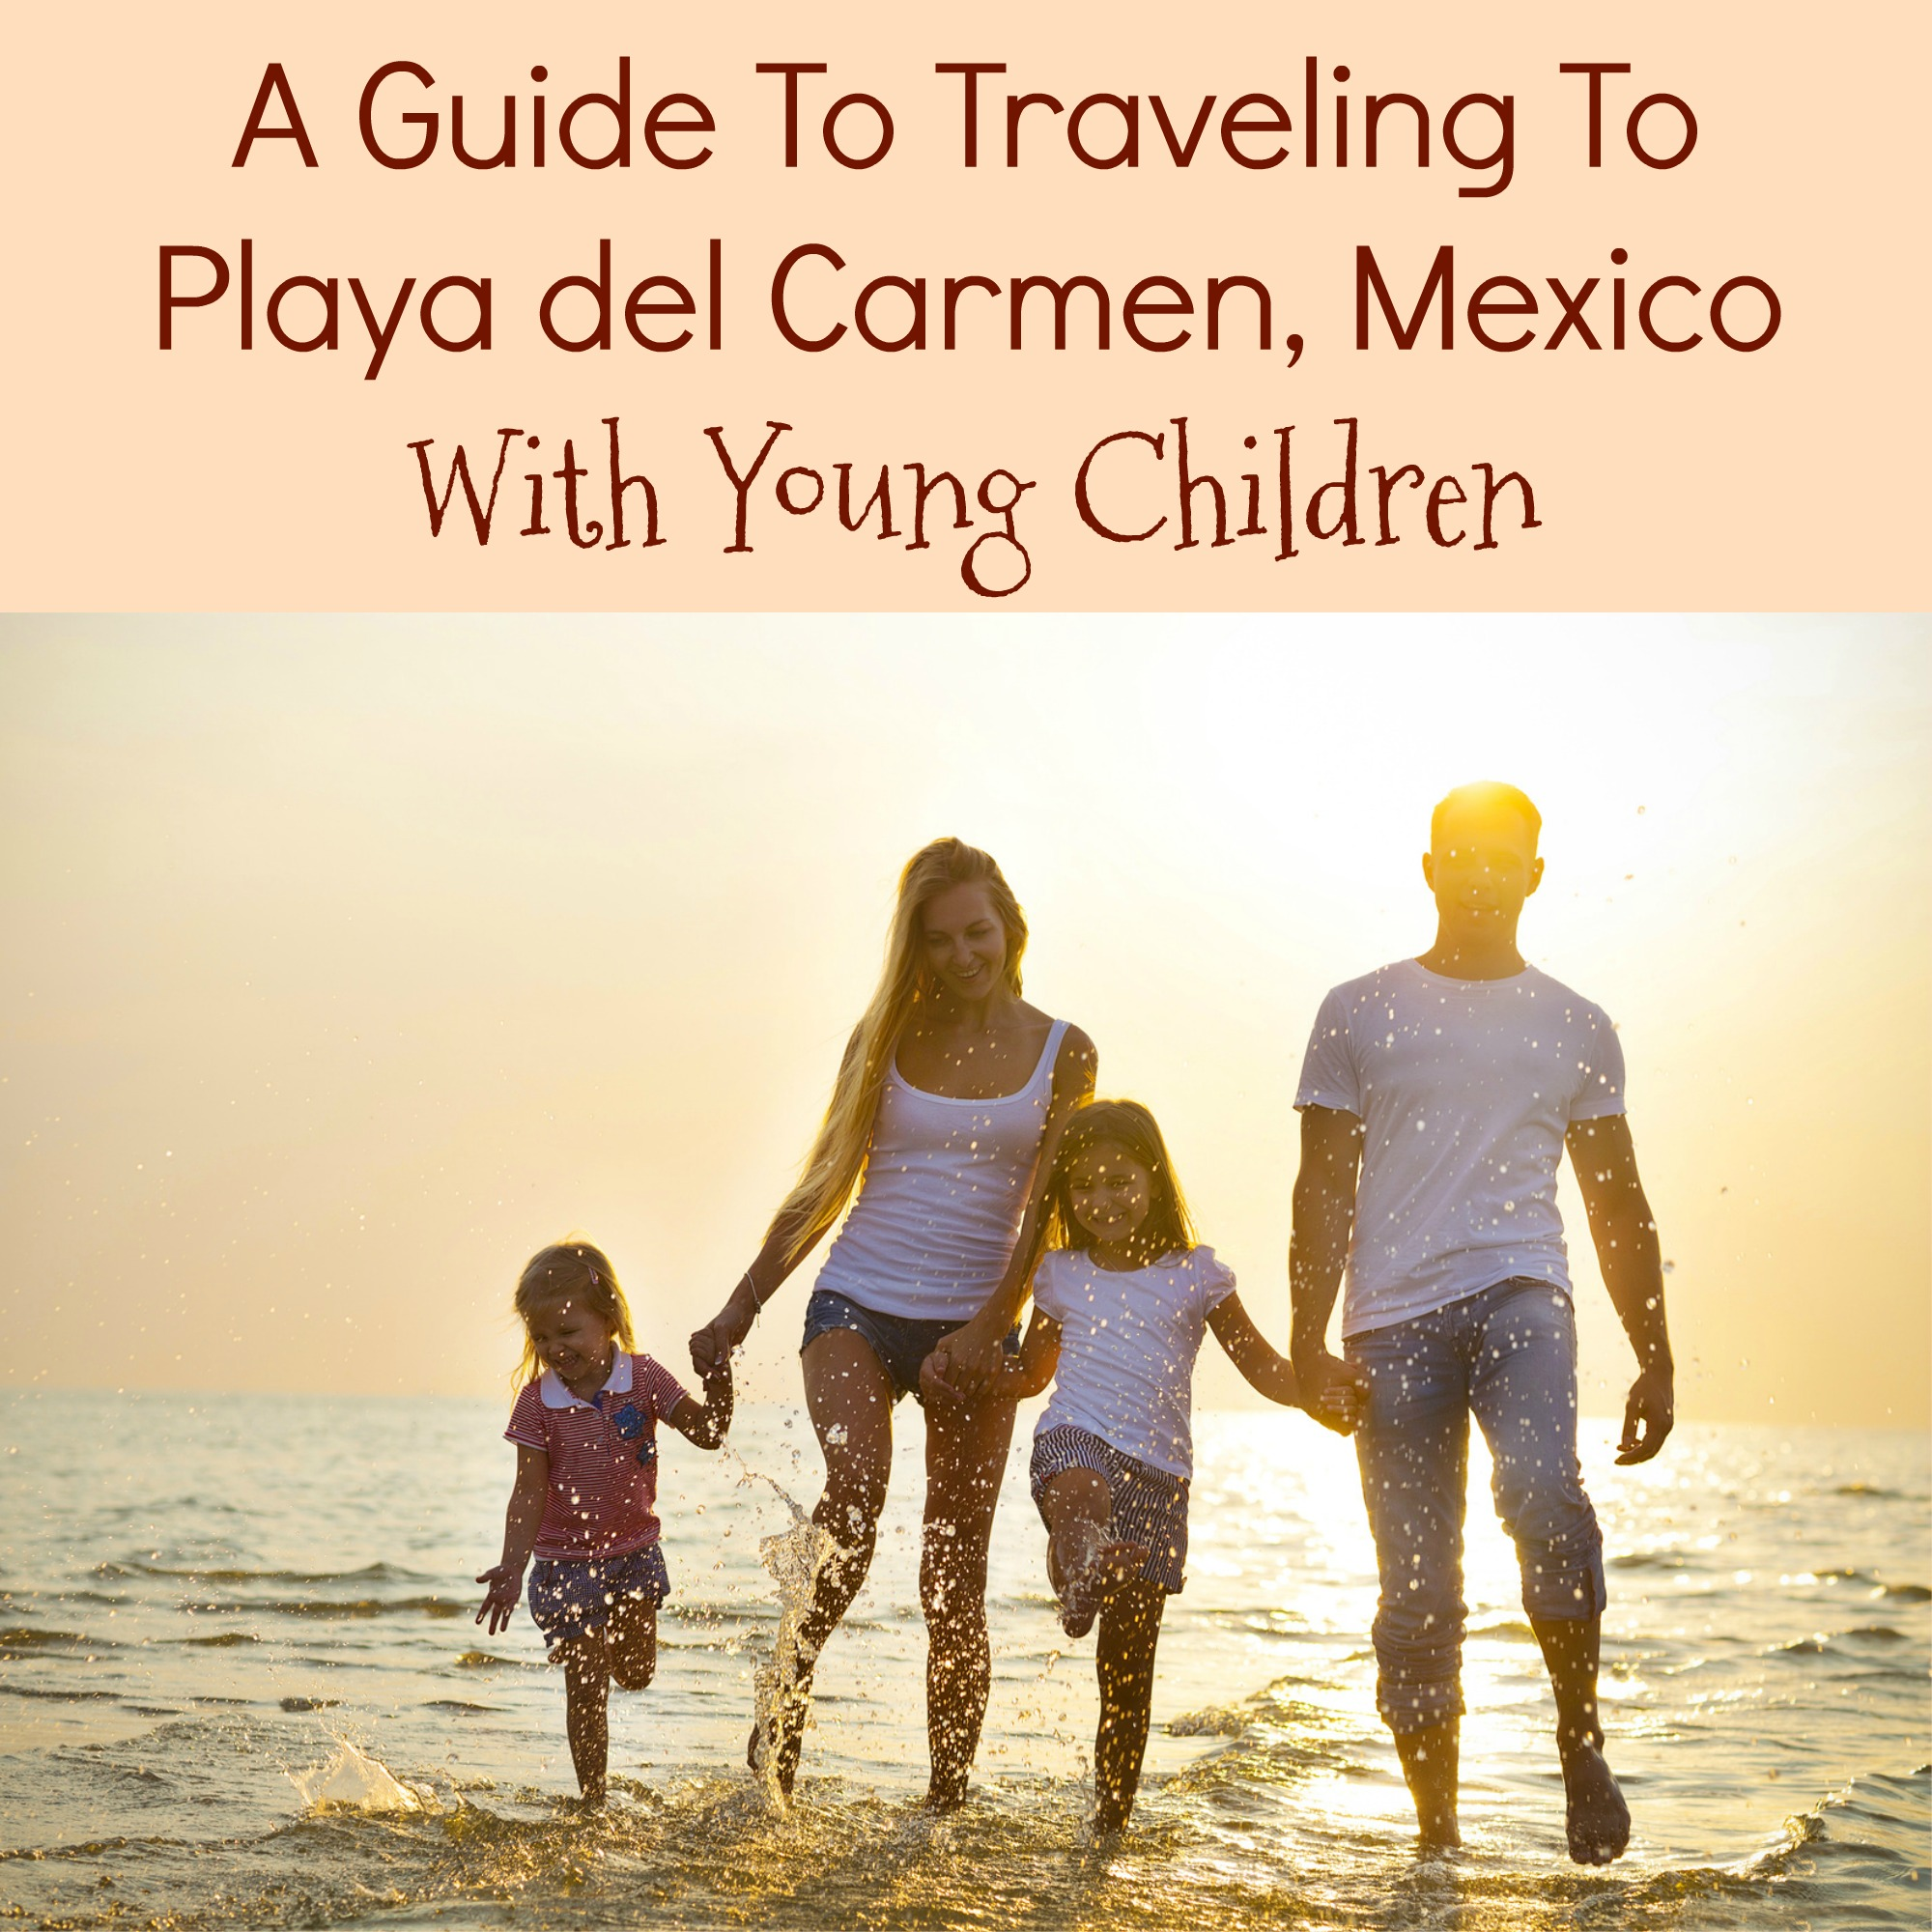 A guide to traveling to Playa Del Carmen with Children